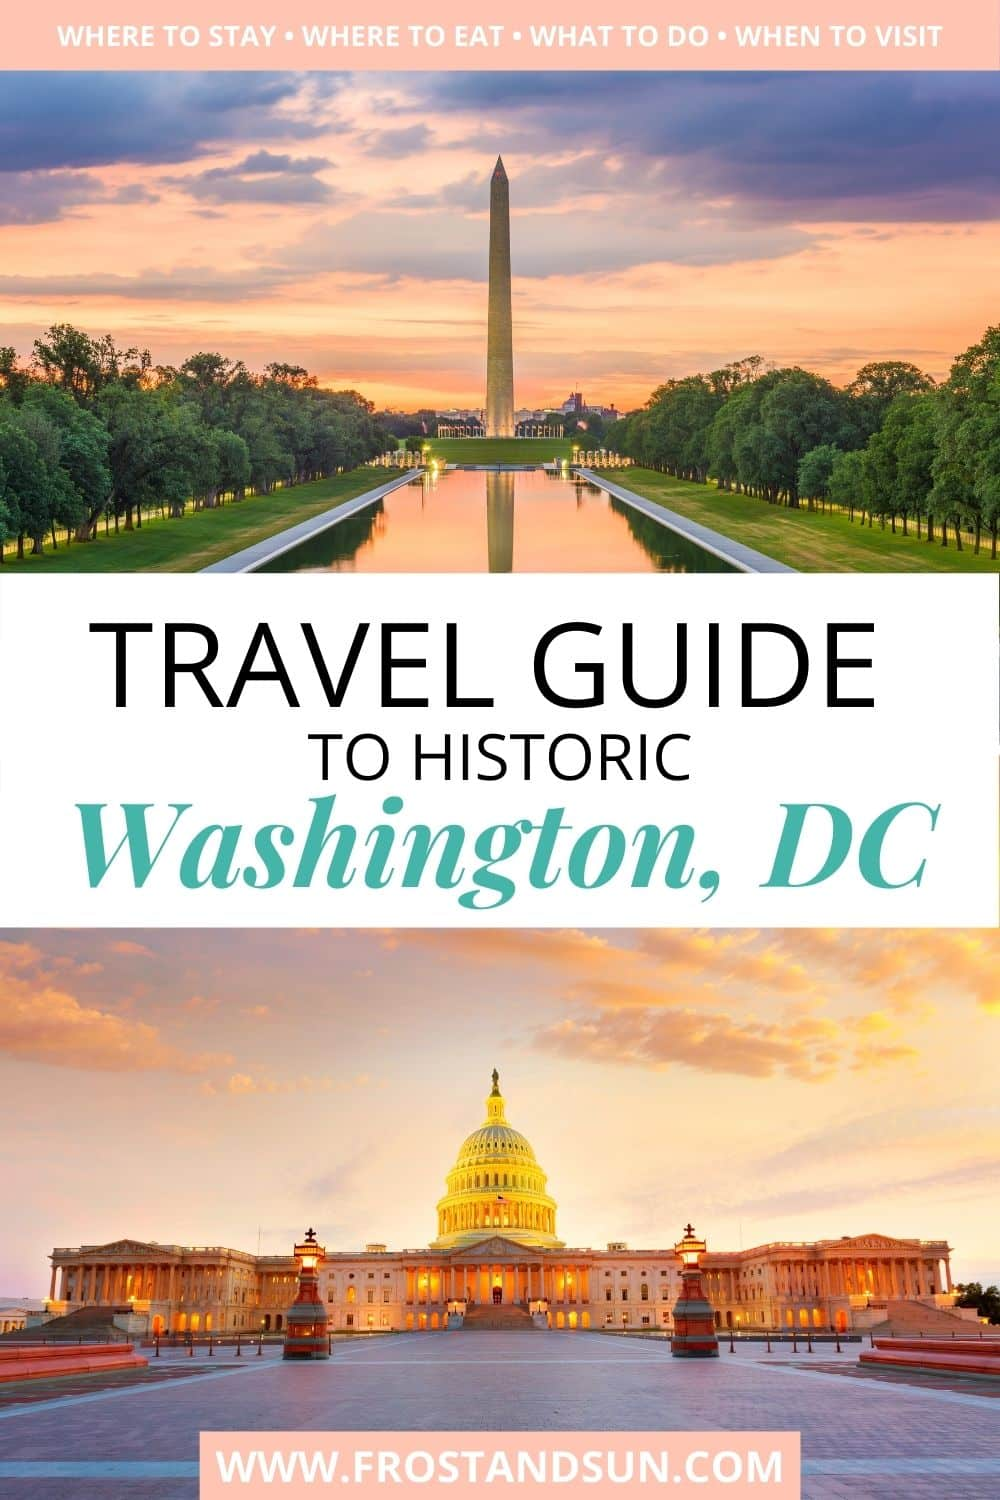 Washington, DC Travel Guide